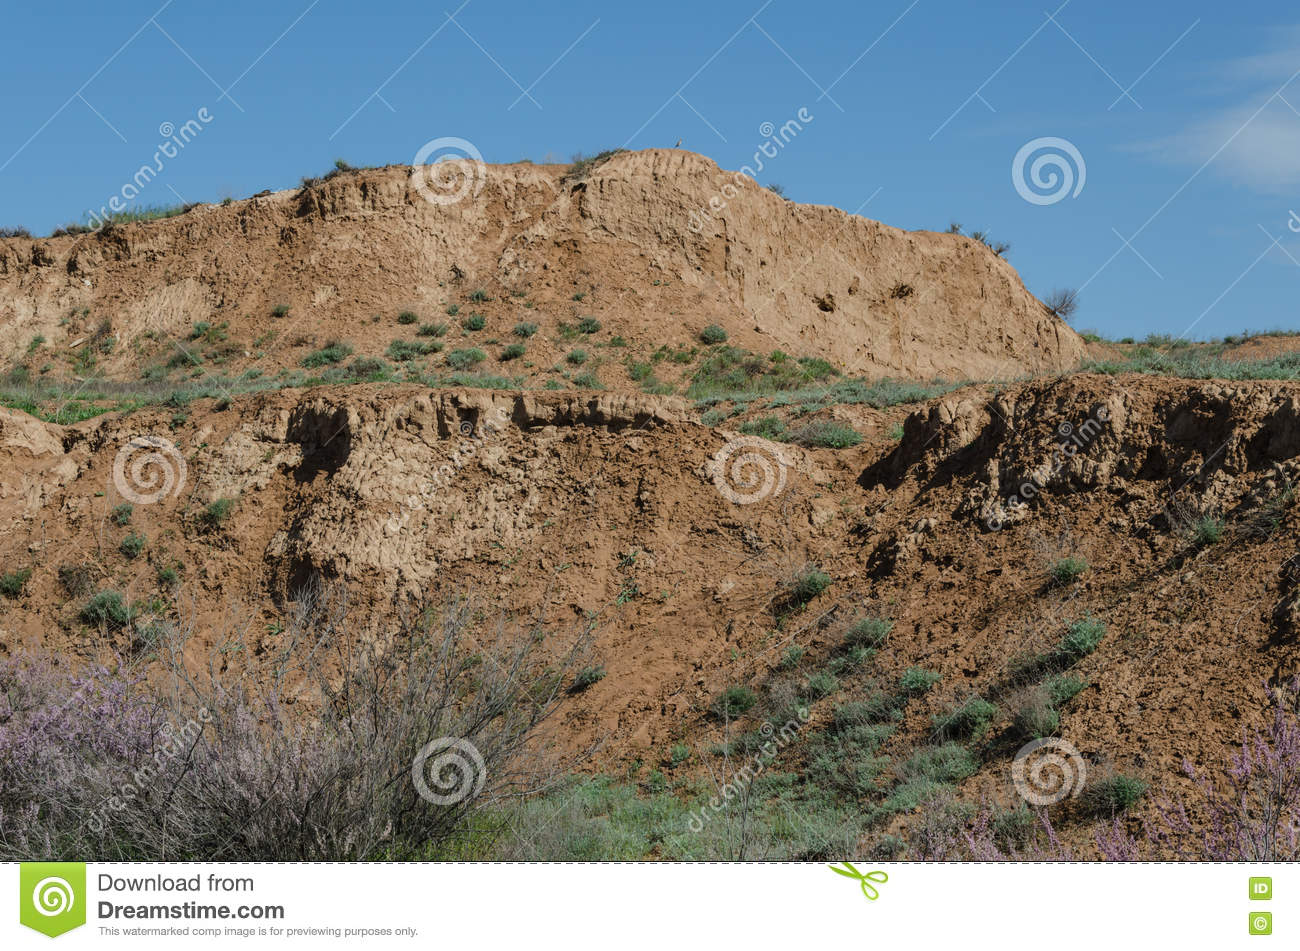 The large hill in the steppe